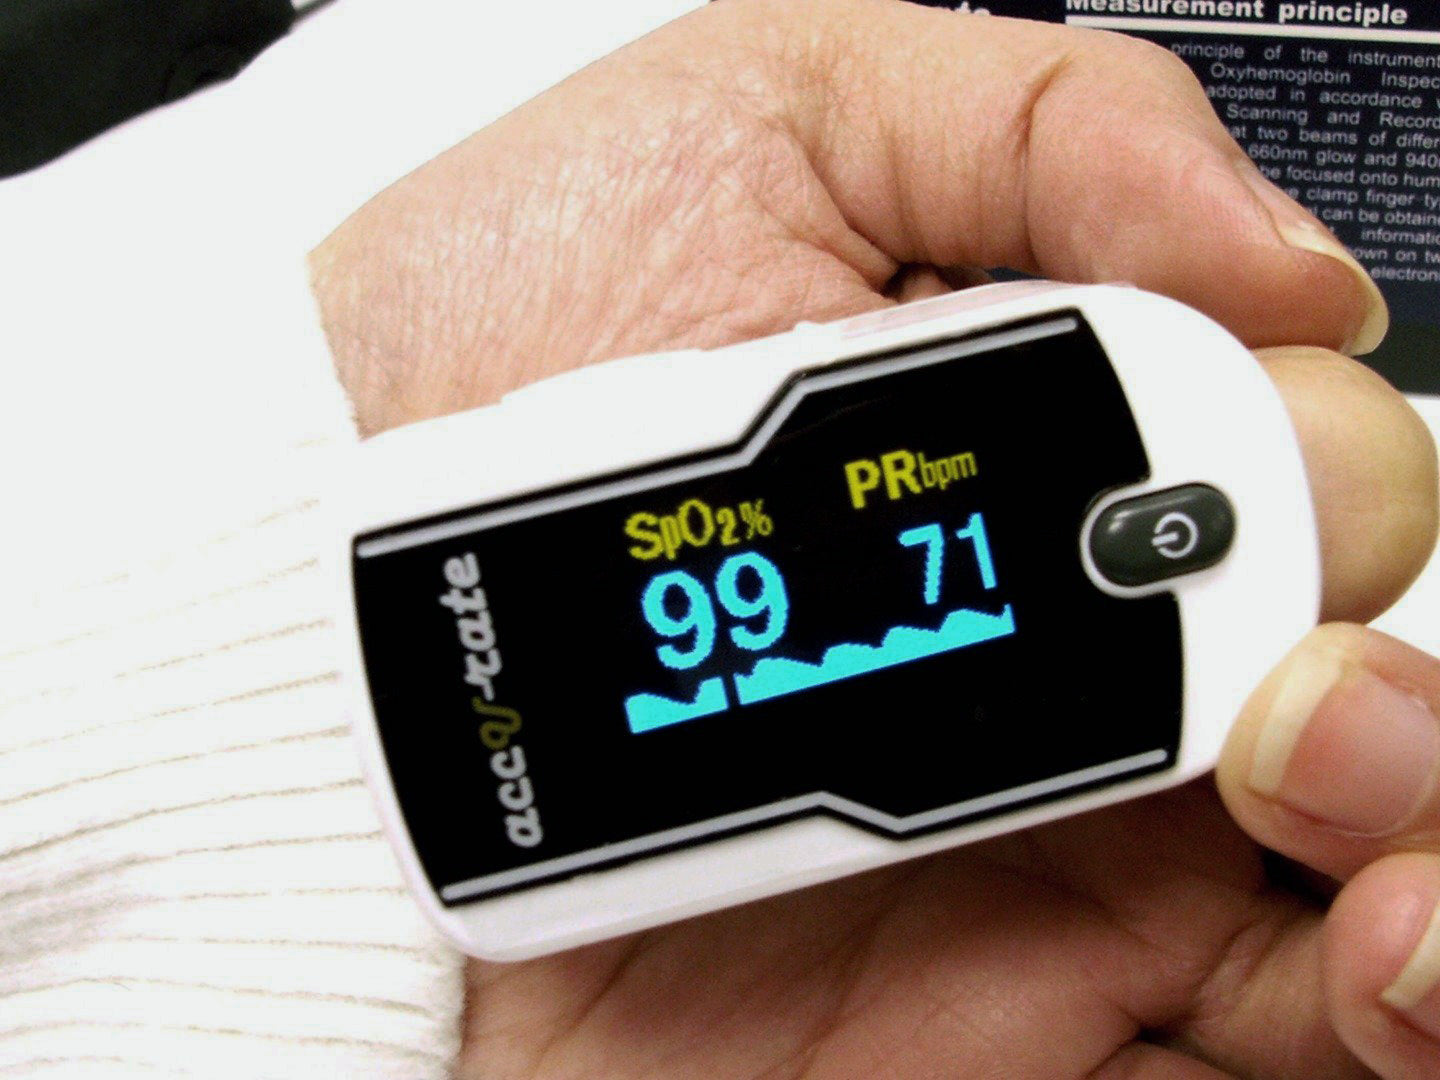 430 DL pulse oximeter